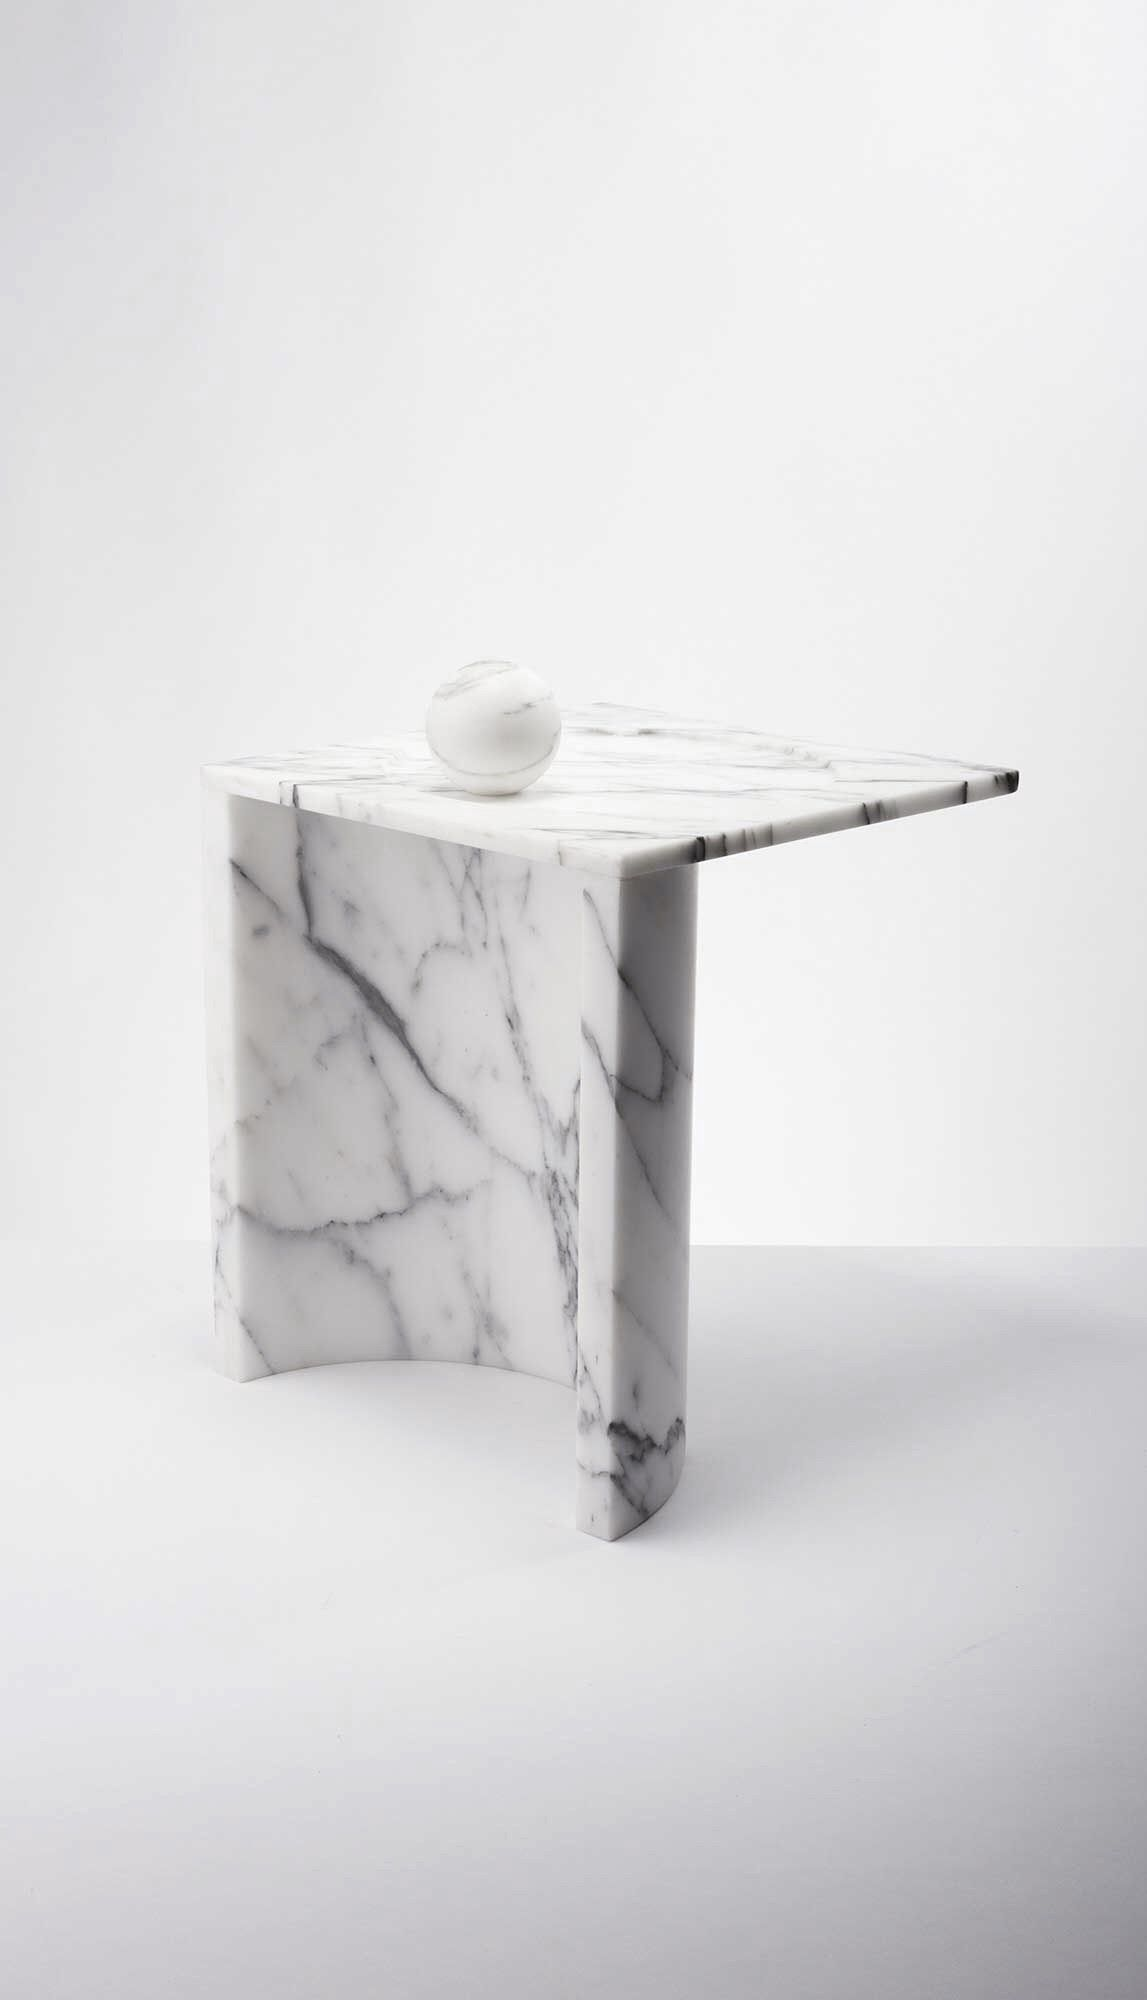 Thevoz Choquet For Bloc Studios Marble Furniture Furniture Side Tables Furniture